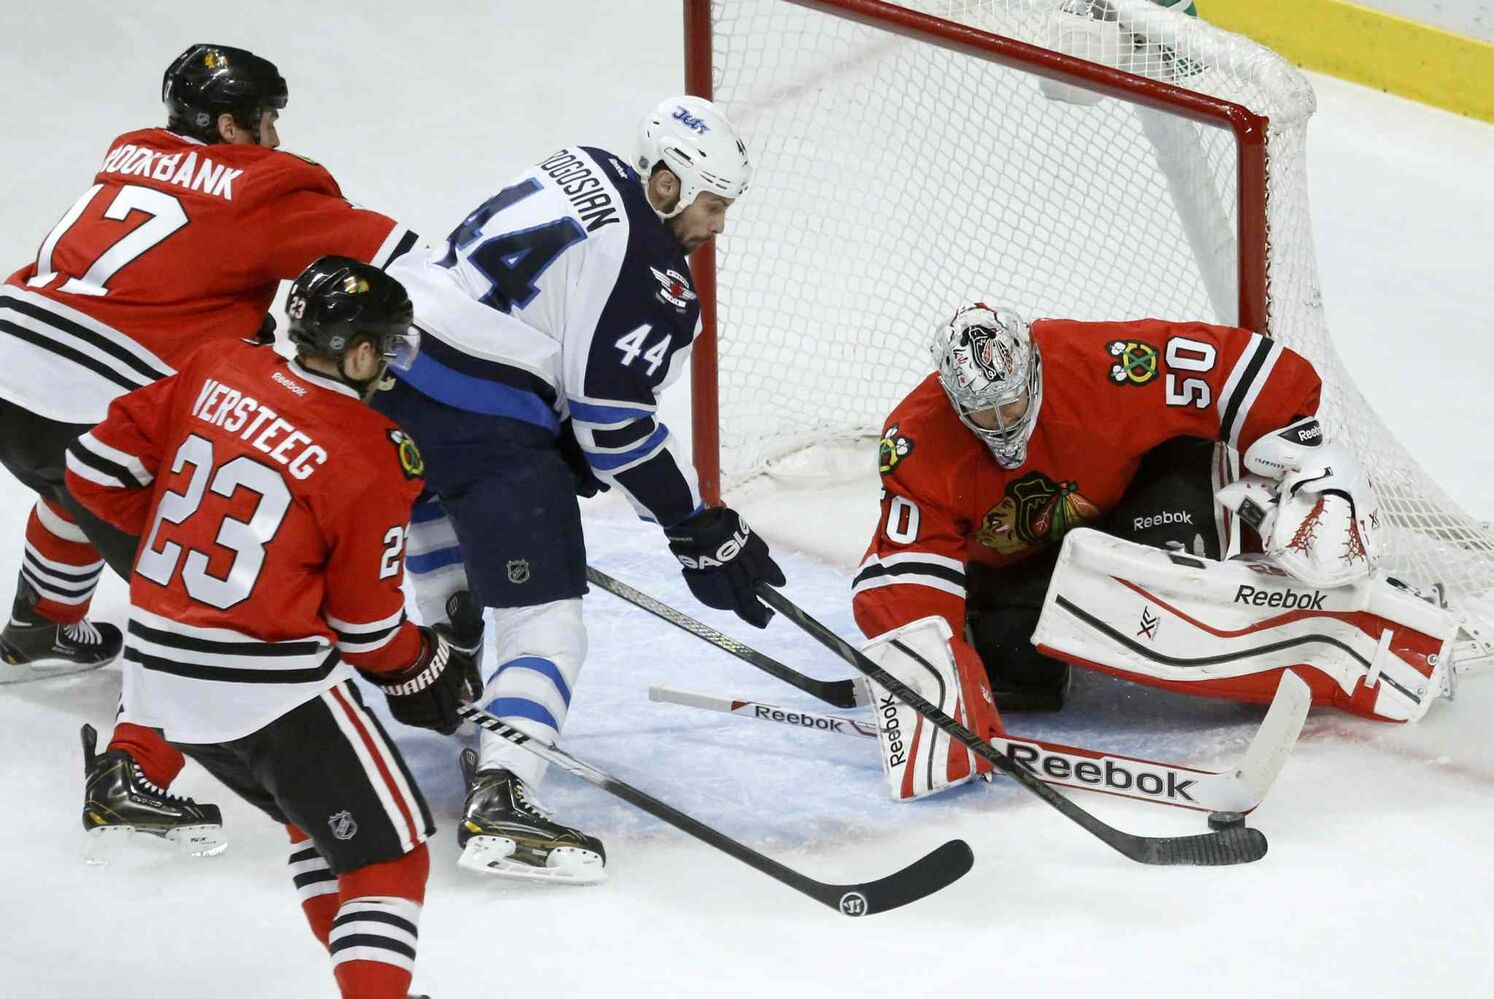 Blackhawks goalie Corey Crawford thwarts Jets defenseman Zach Bogosian's attempt to score. (Charles Rex Arbogast / The Associated Press)